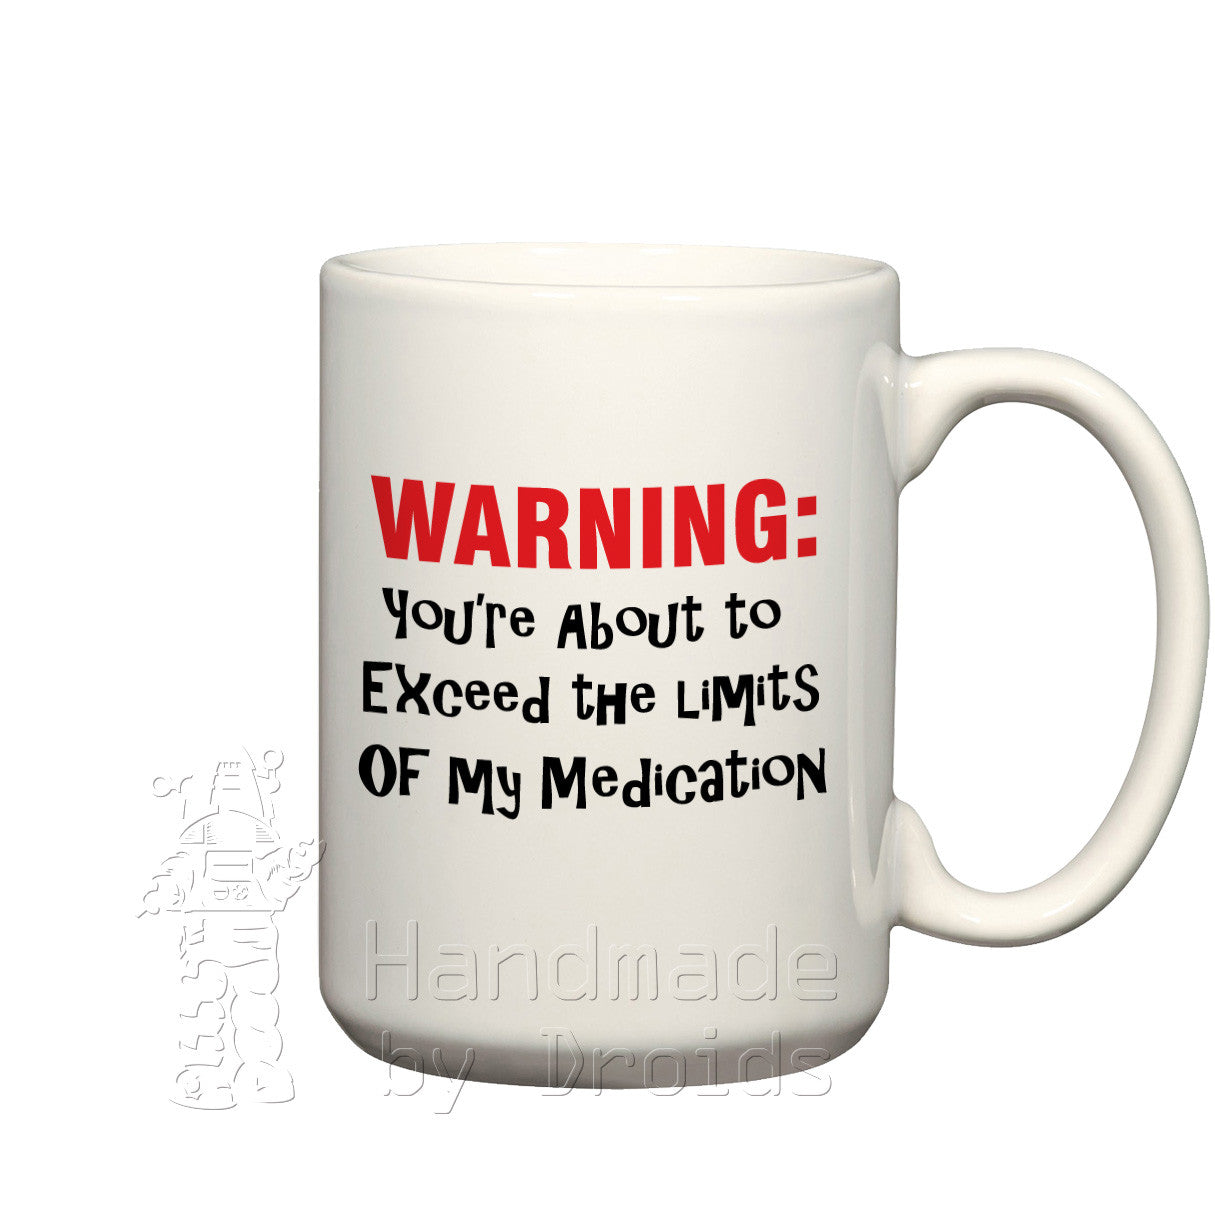 """Warning: You're about to exceed the limits of my medication"" mug"